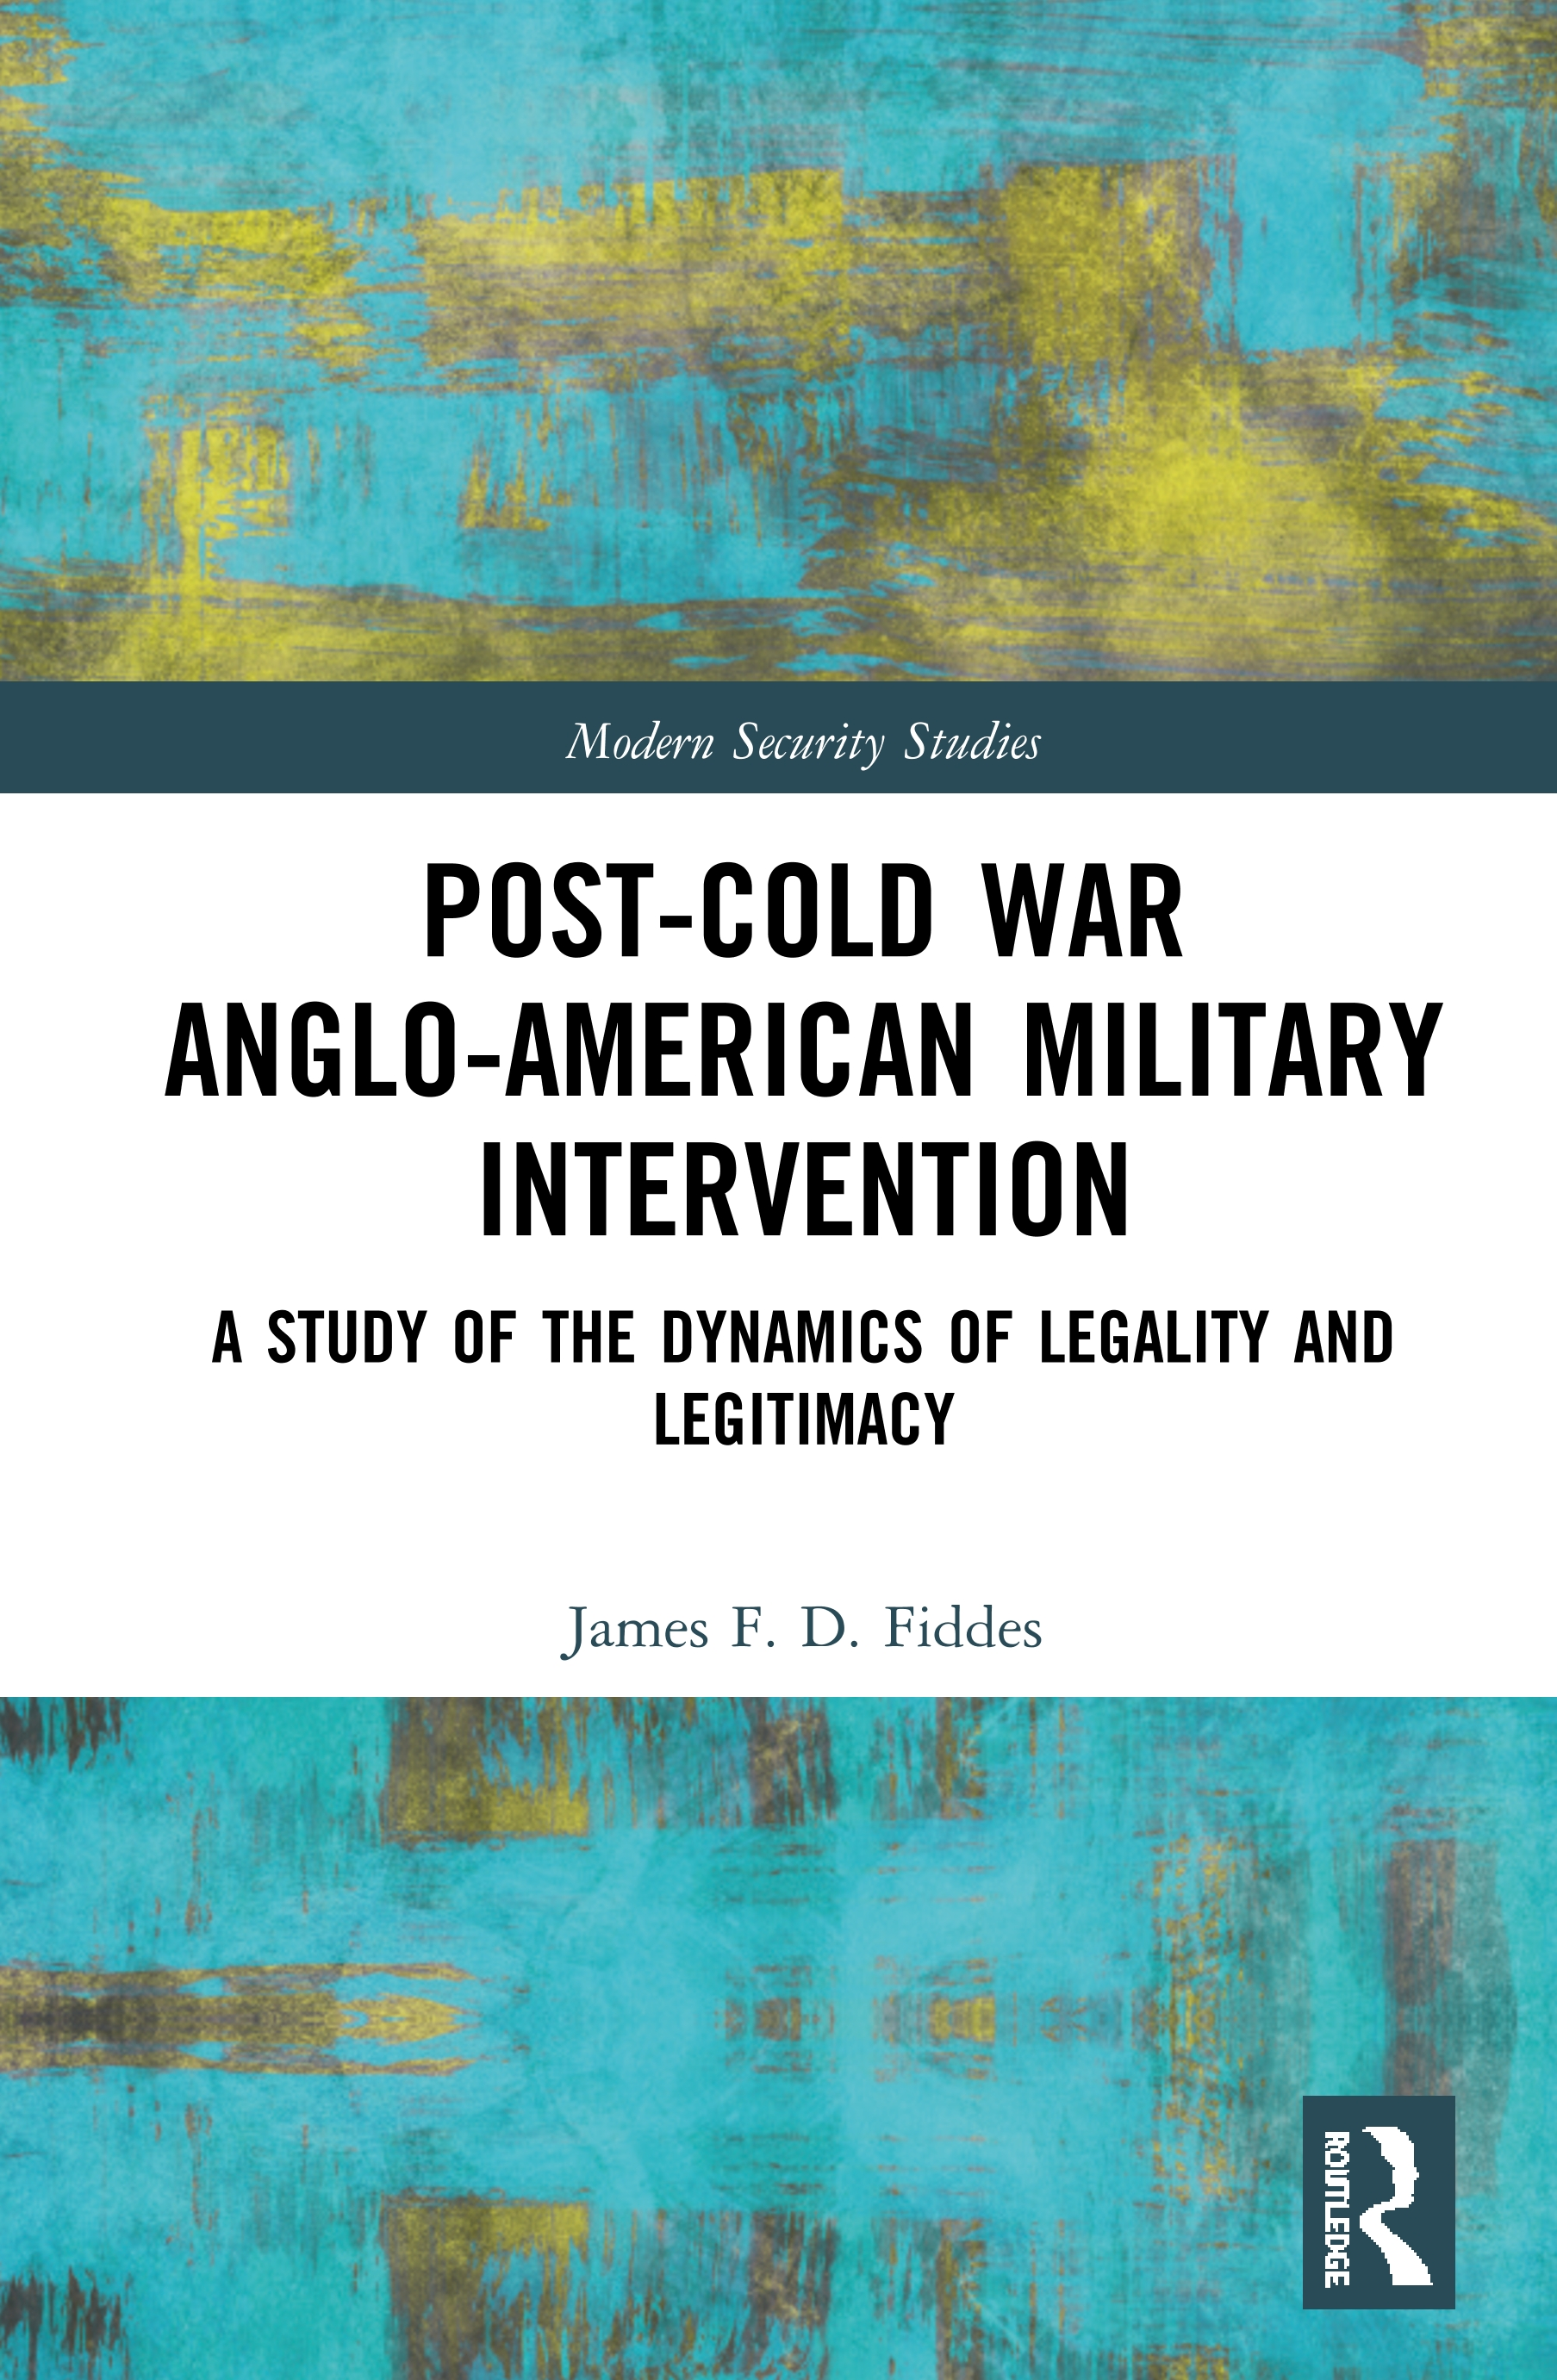 Post-Cold War Anglo-American Military Intervention: A Study of the Dynamics of Legality and Legitimacy book cover